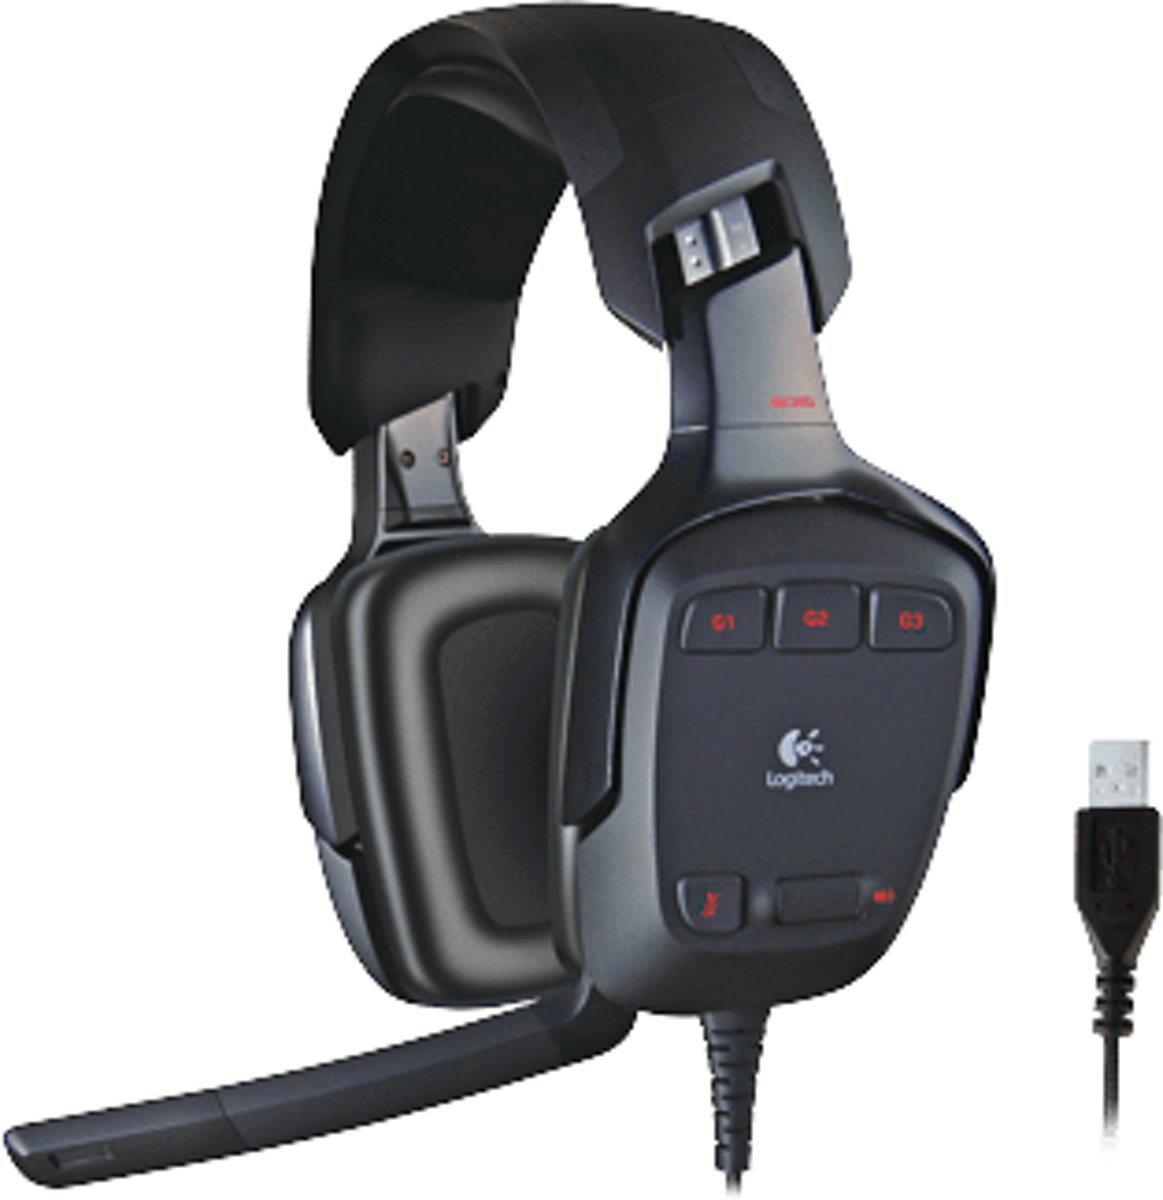 35 - 7.1 Virtueel Surround Gaming Headset - Pc + PS4